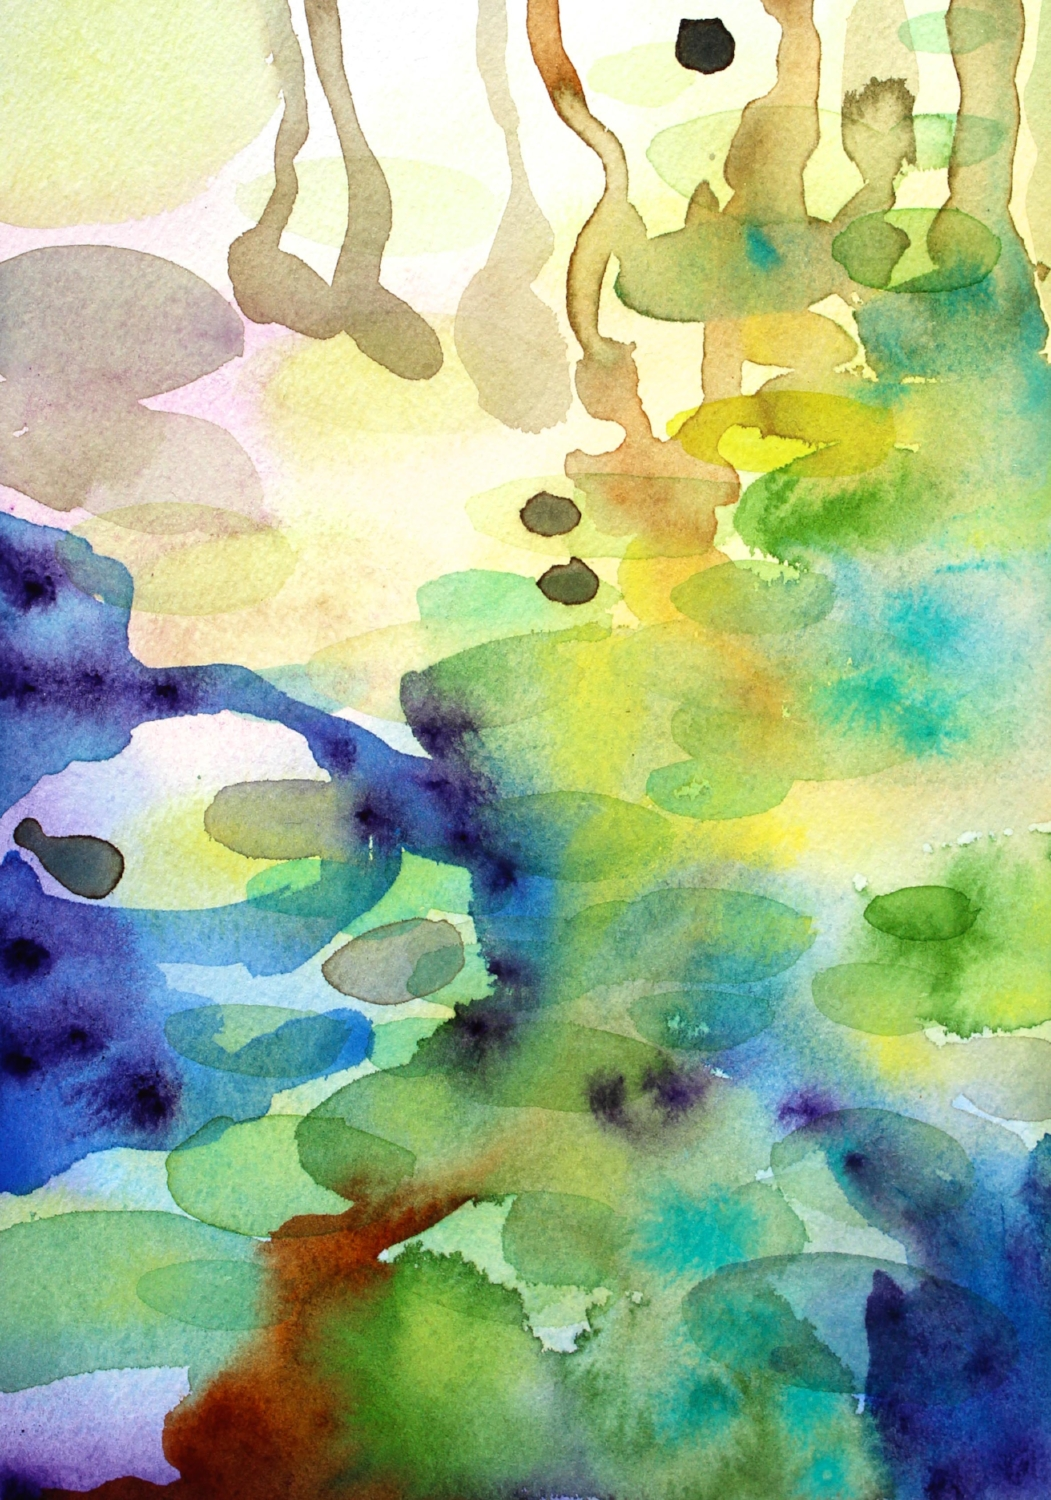 PAINTING THAT WON WINSOR & NEWTON WATERCOLOUR REVOLUTION COMPETITION